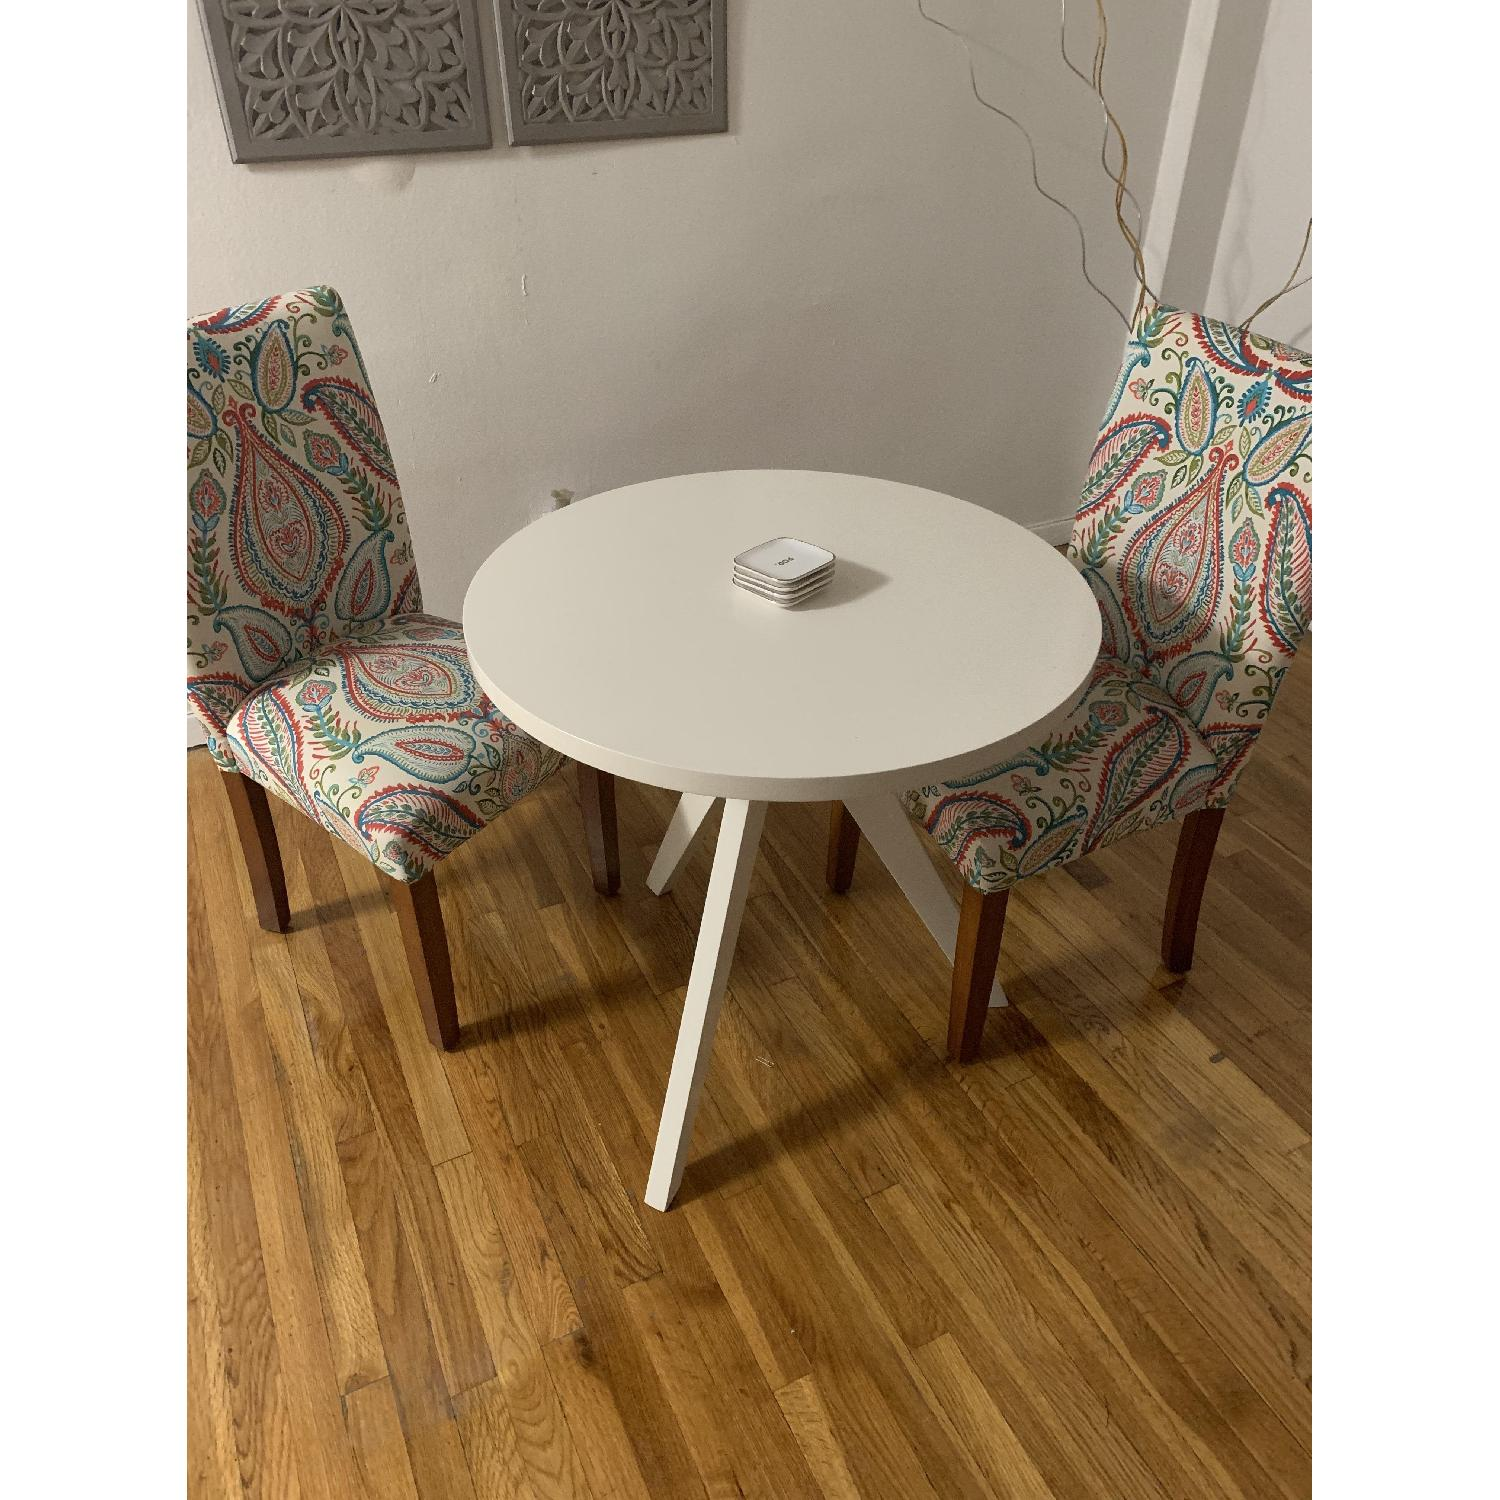 Target Floral Accent Chair-1